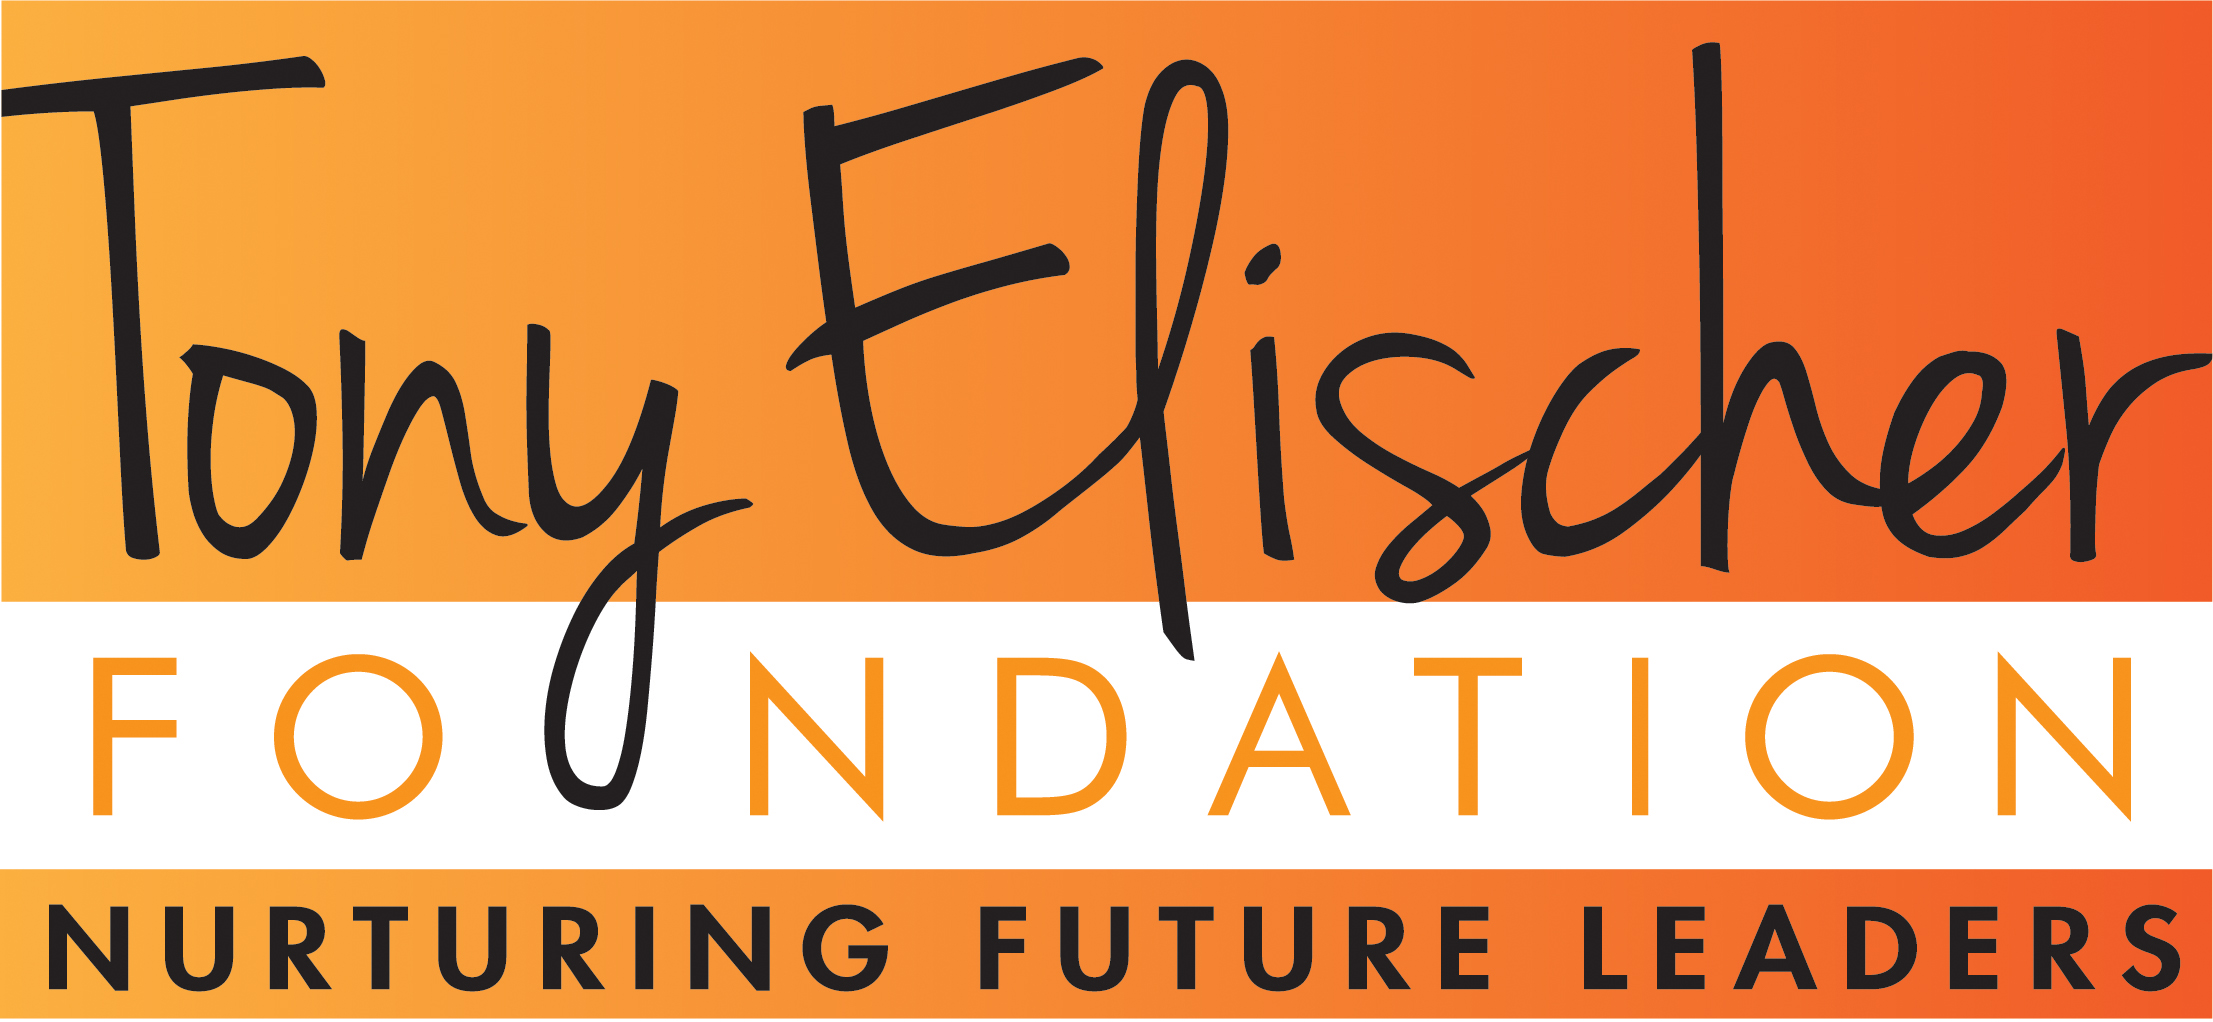 Tony Elischer Foundation